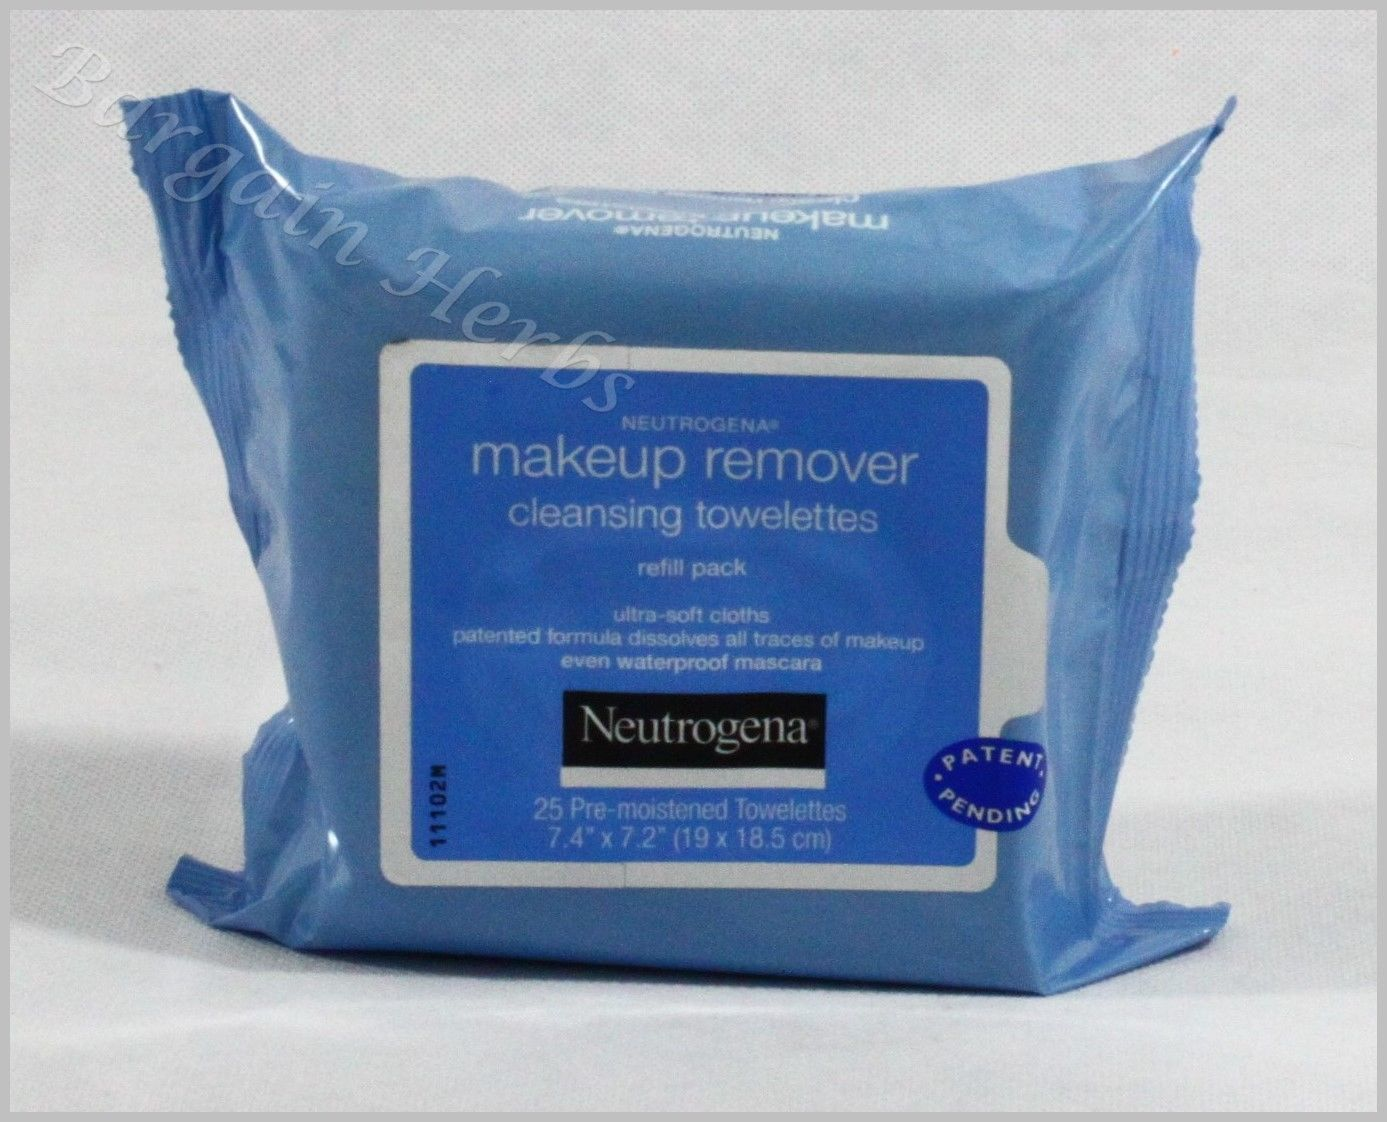 Neutrogena Makeup Remover Cleansing Towelettes for wholesale